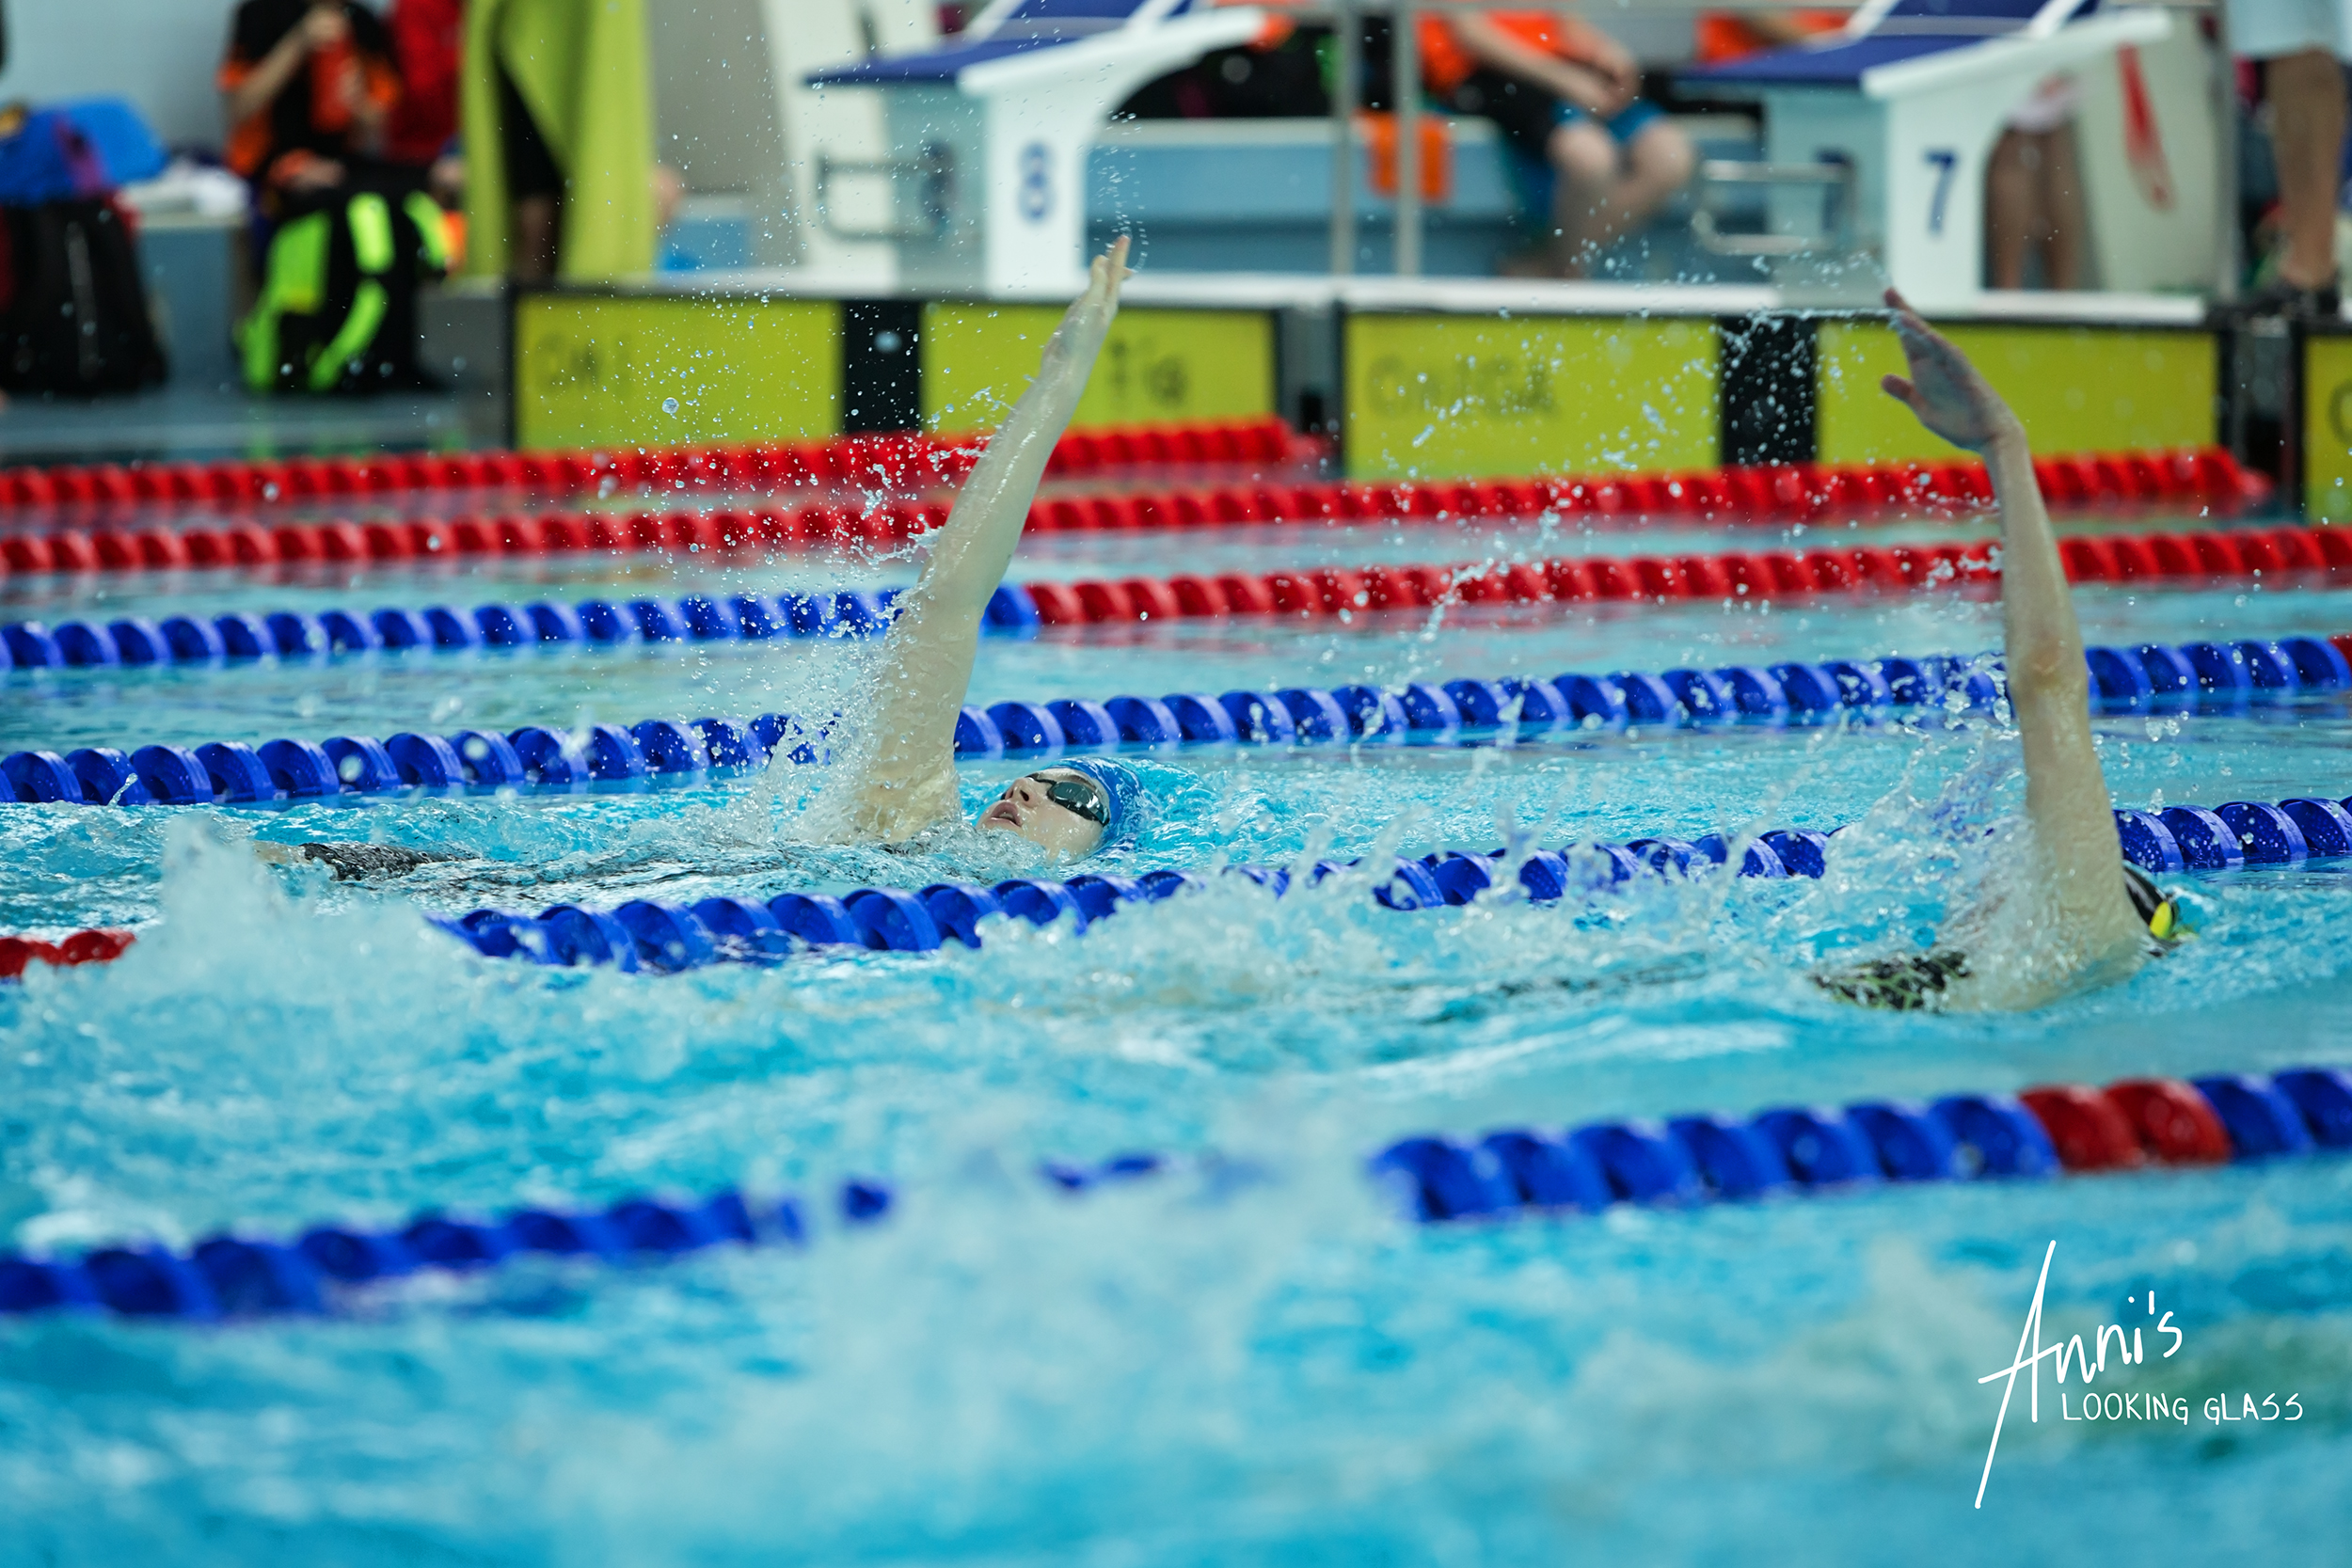 Loughborough Photographer: Swimmers competing at Loughborough University's pool. 24th March 2018